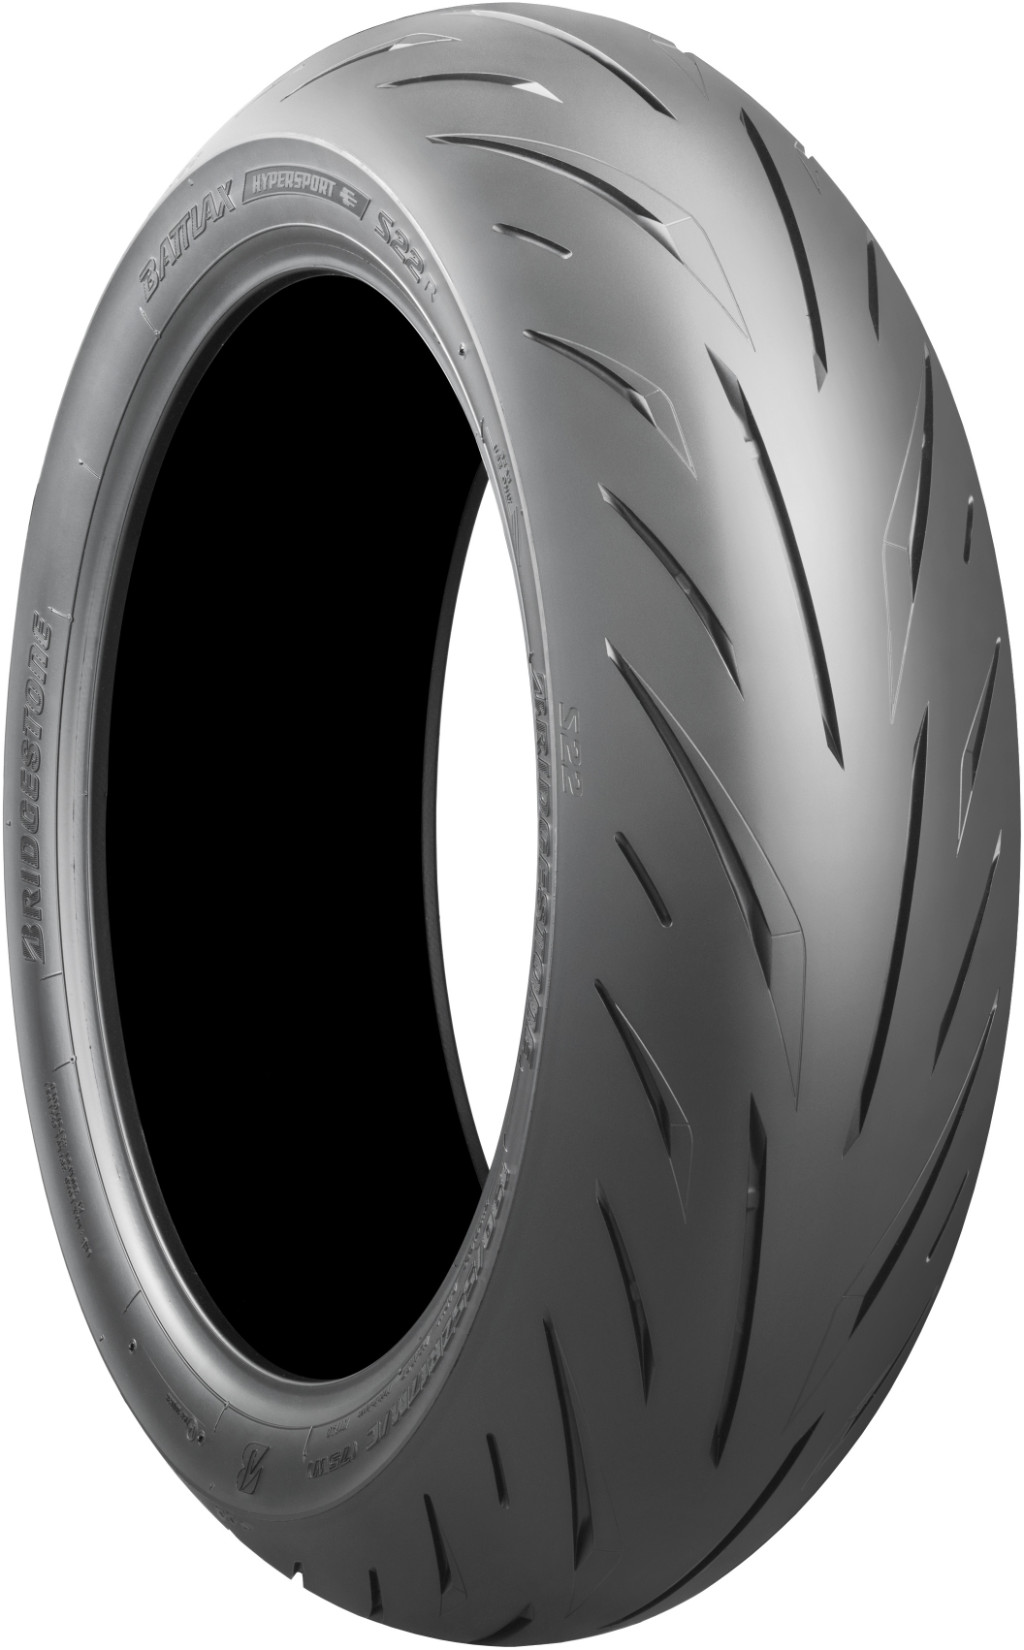 BRIDGESTONE BATTLAX гиперкаром С22 [180/55zr17m/C(от 73 Вт)] BATTLAX гипер с